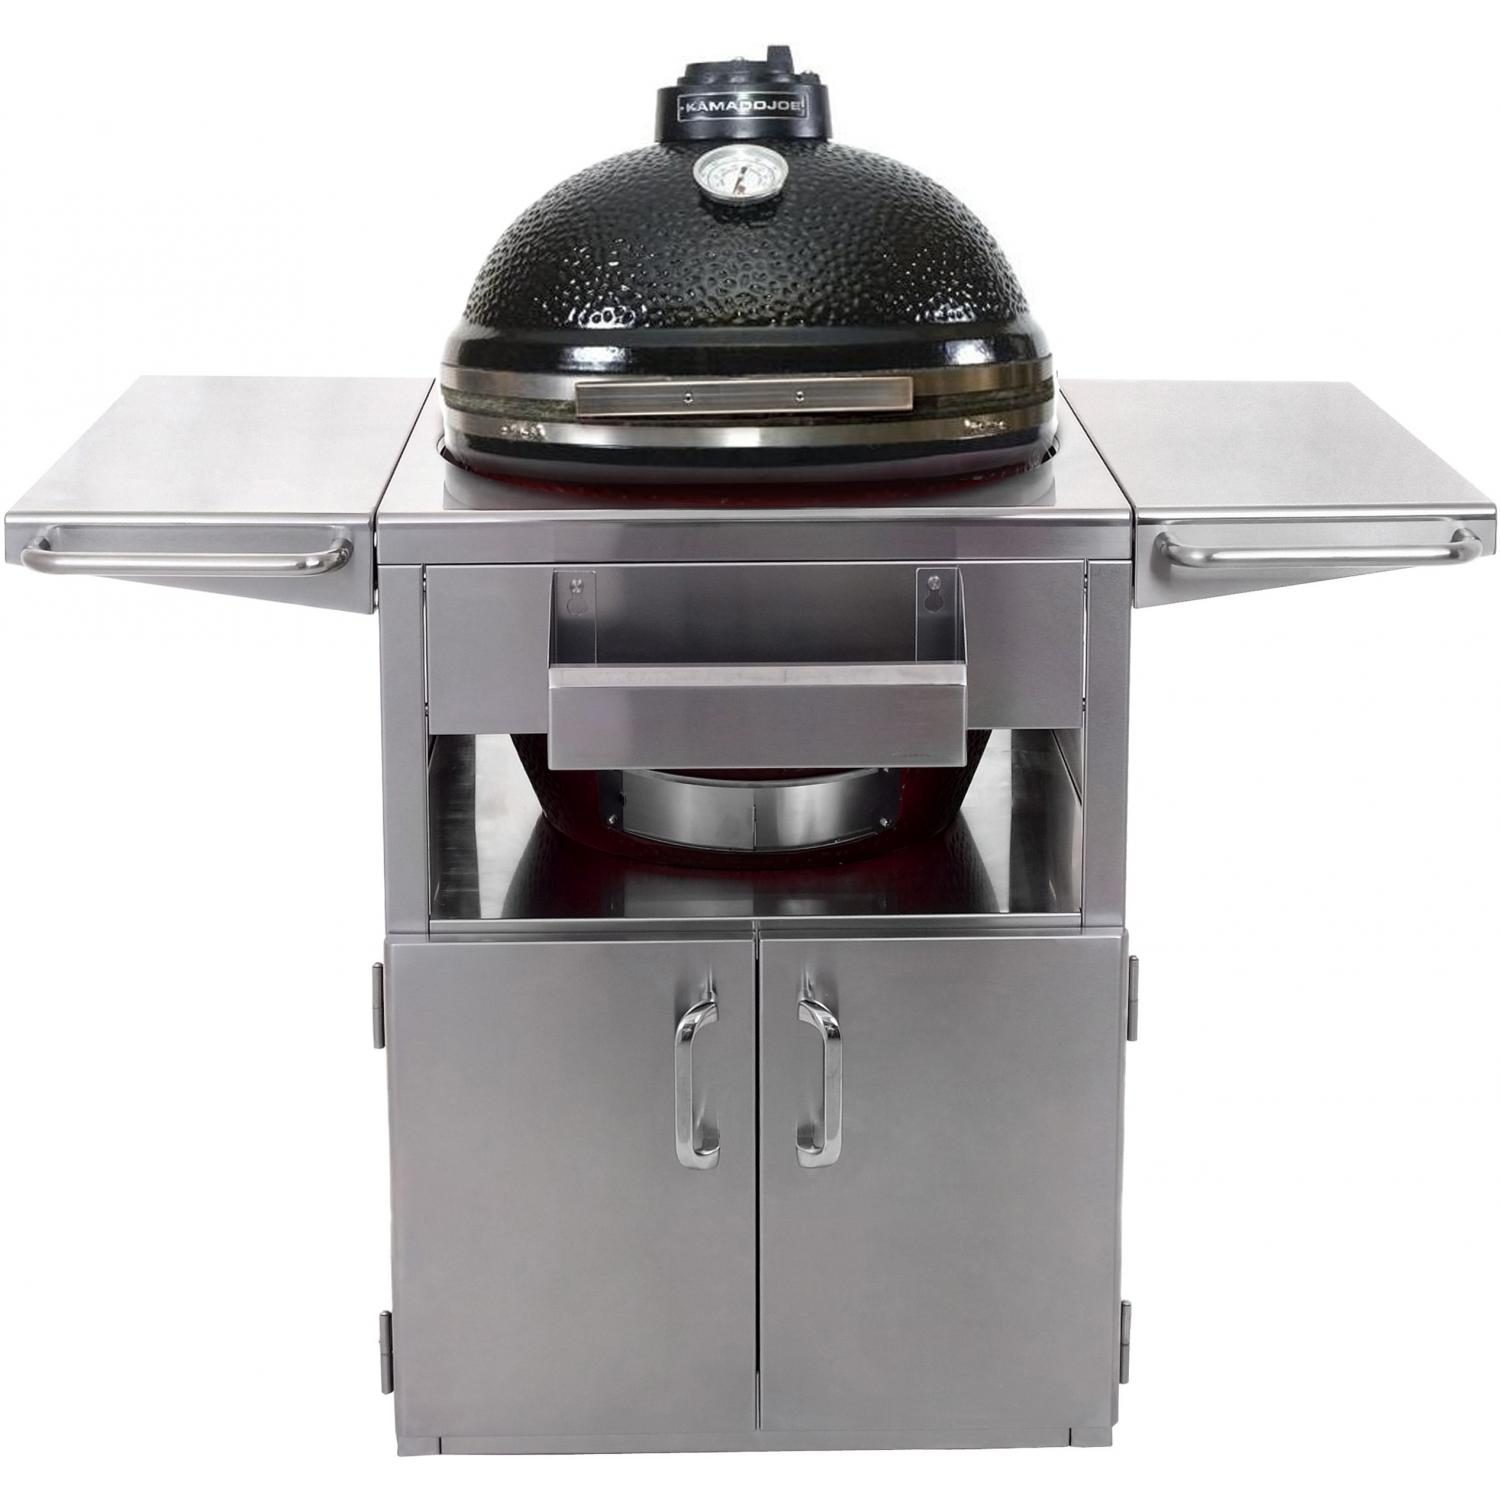 Kamado Joe ClassicJoe Ceramic Grill With Stainless Bands On Stainless Steel Cart - Black, Discount ID KJ23NBS KJ-SST